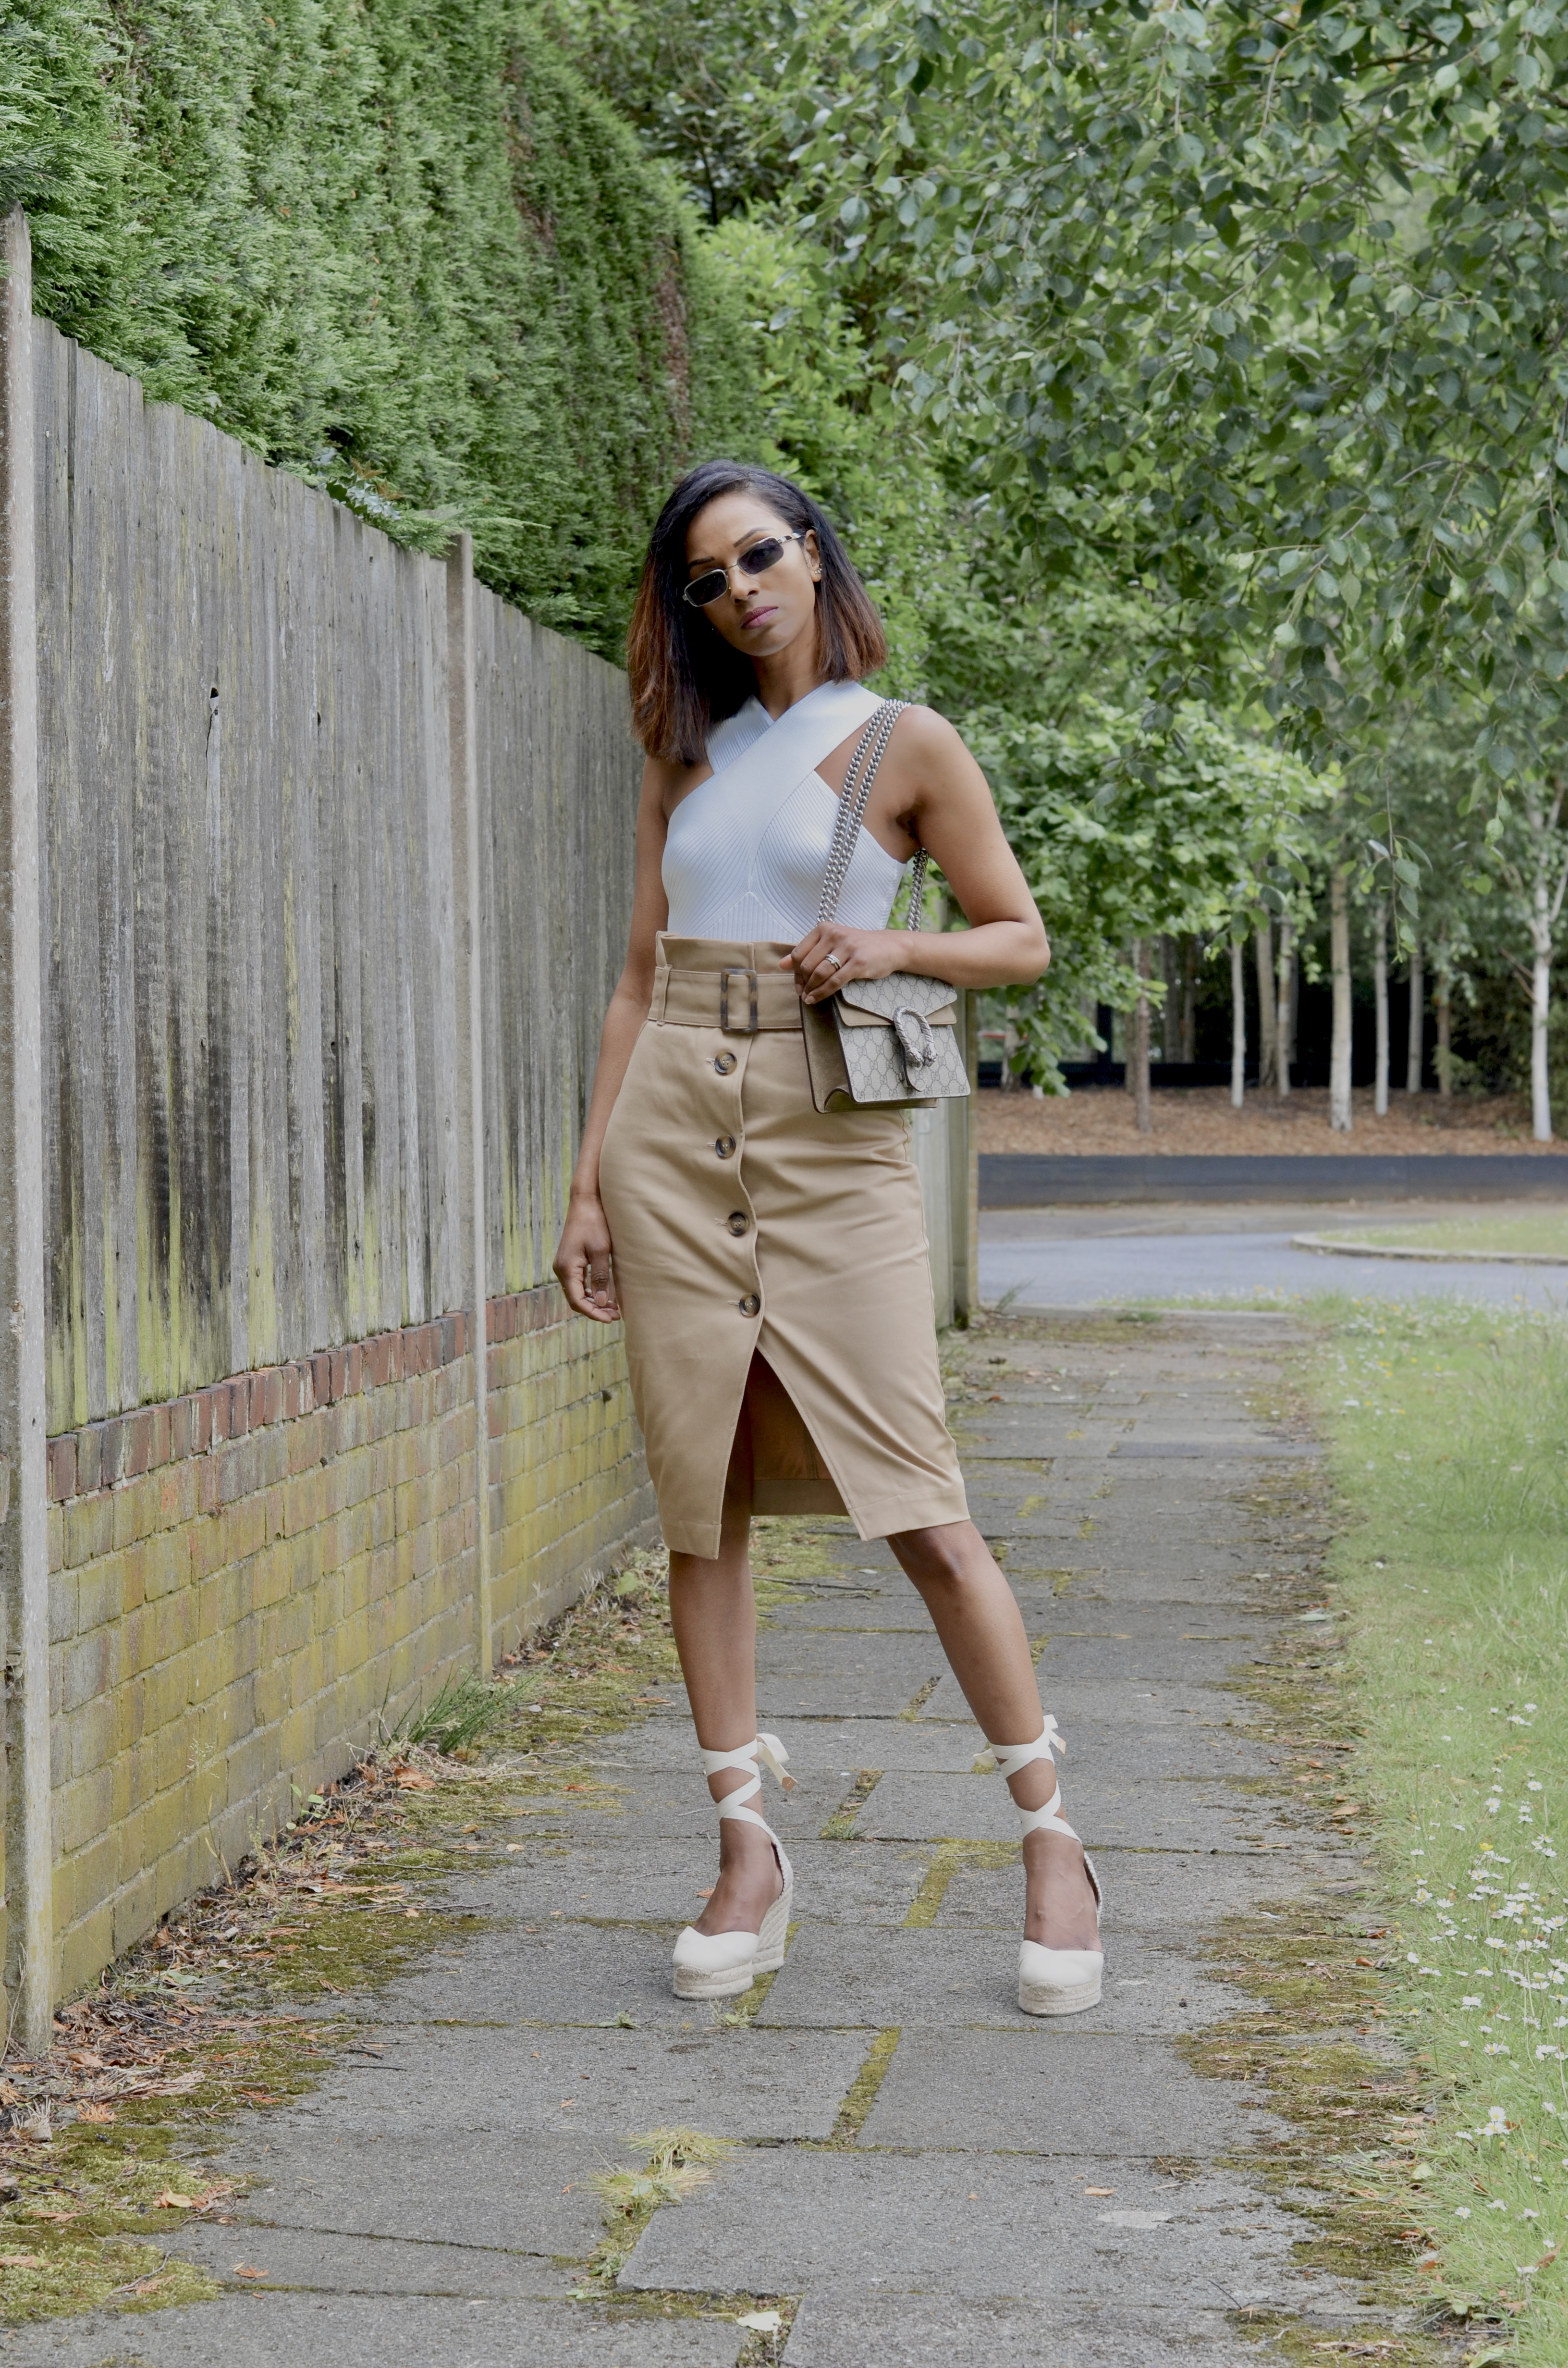 HOW TO STYLE A HALTER NECK TOP